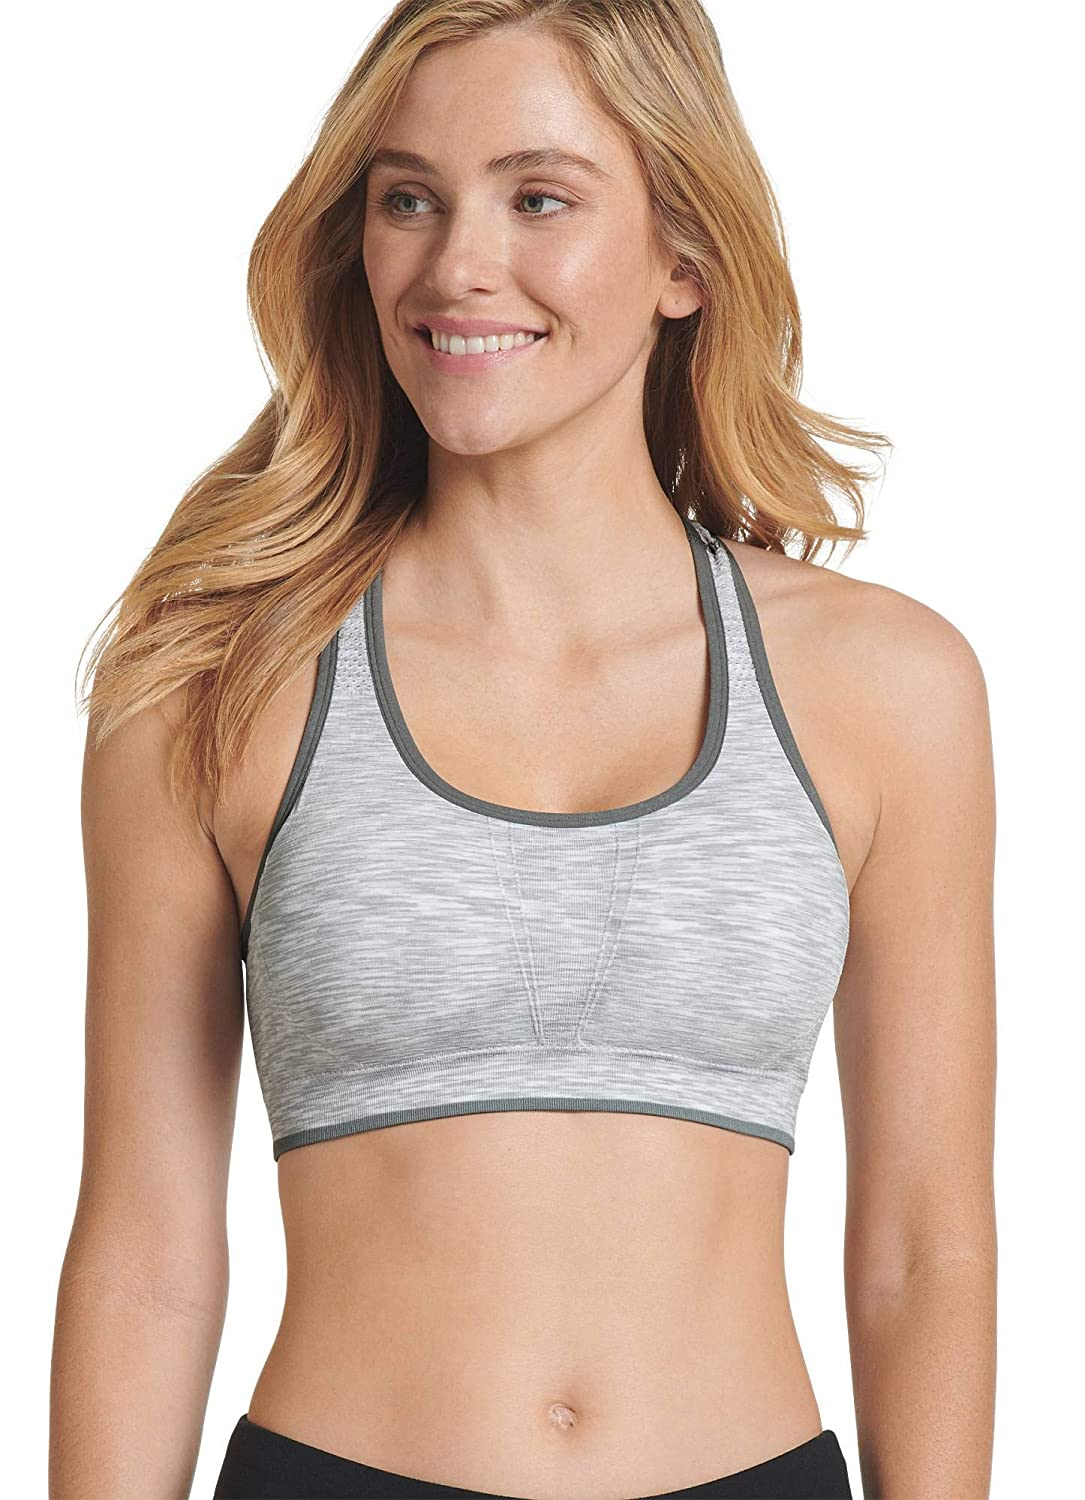 c8b9ca879a Jockey Women s Activewear Persistence Racerback Sports Bra at Amazon Women s  Clothing store